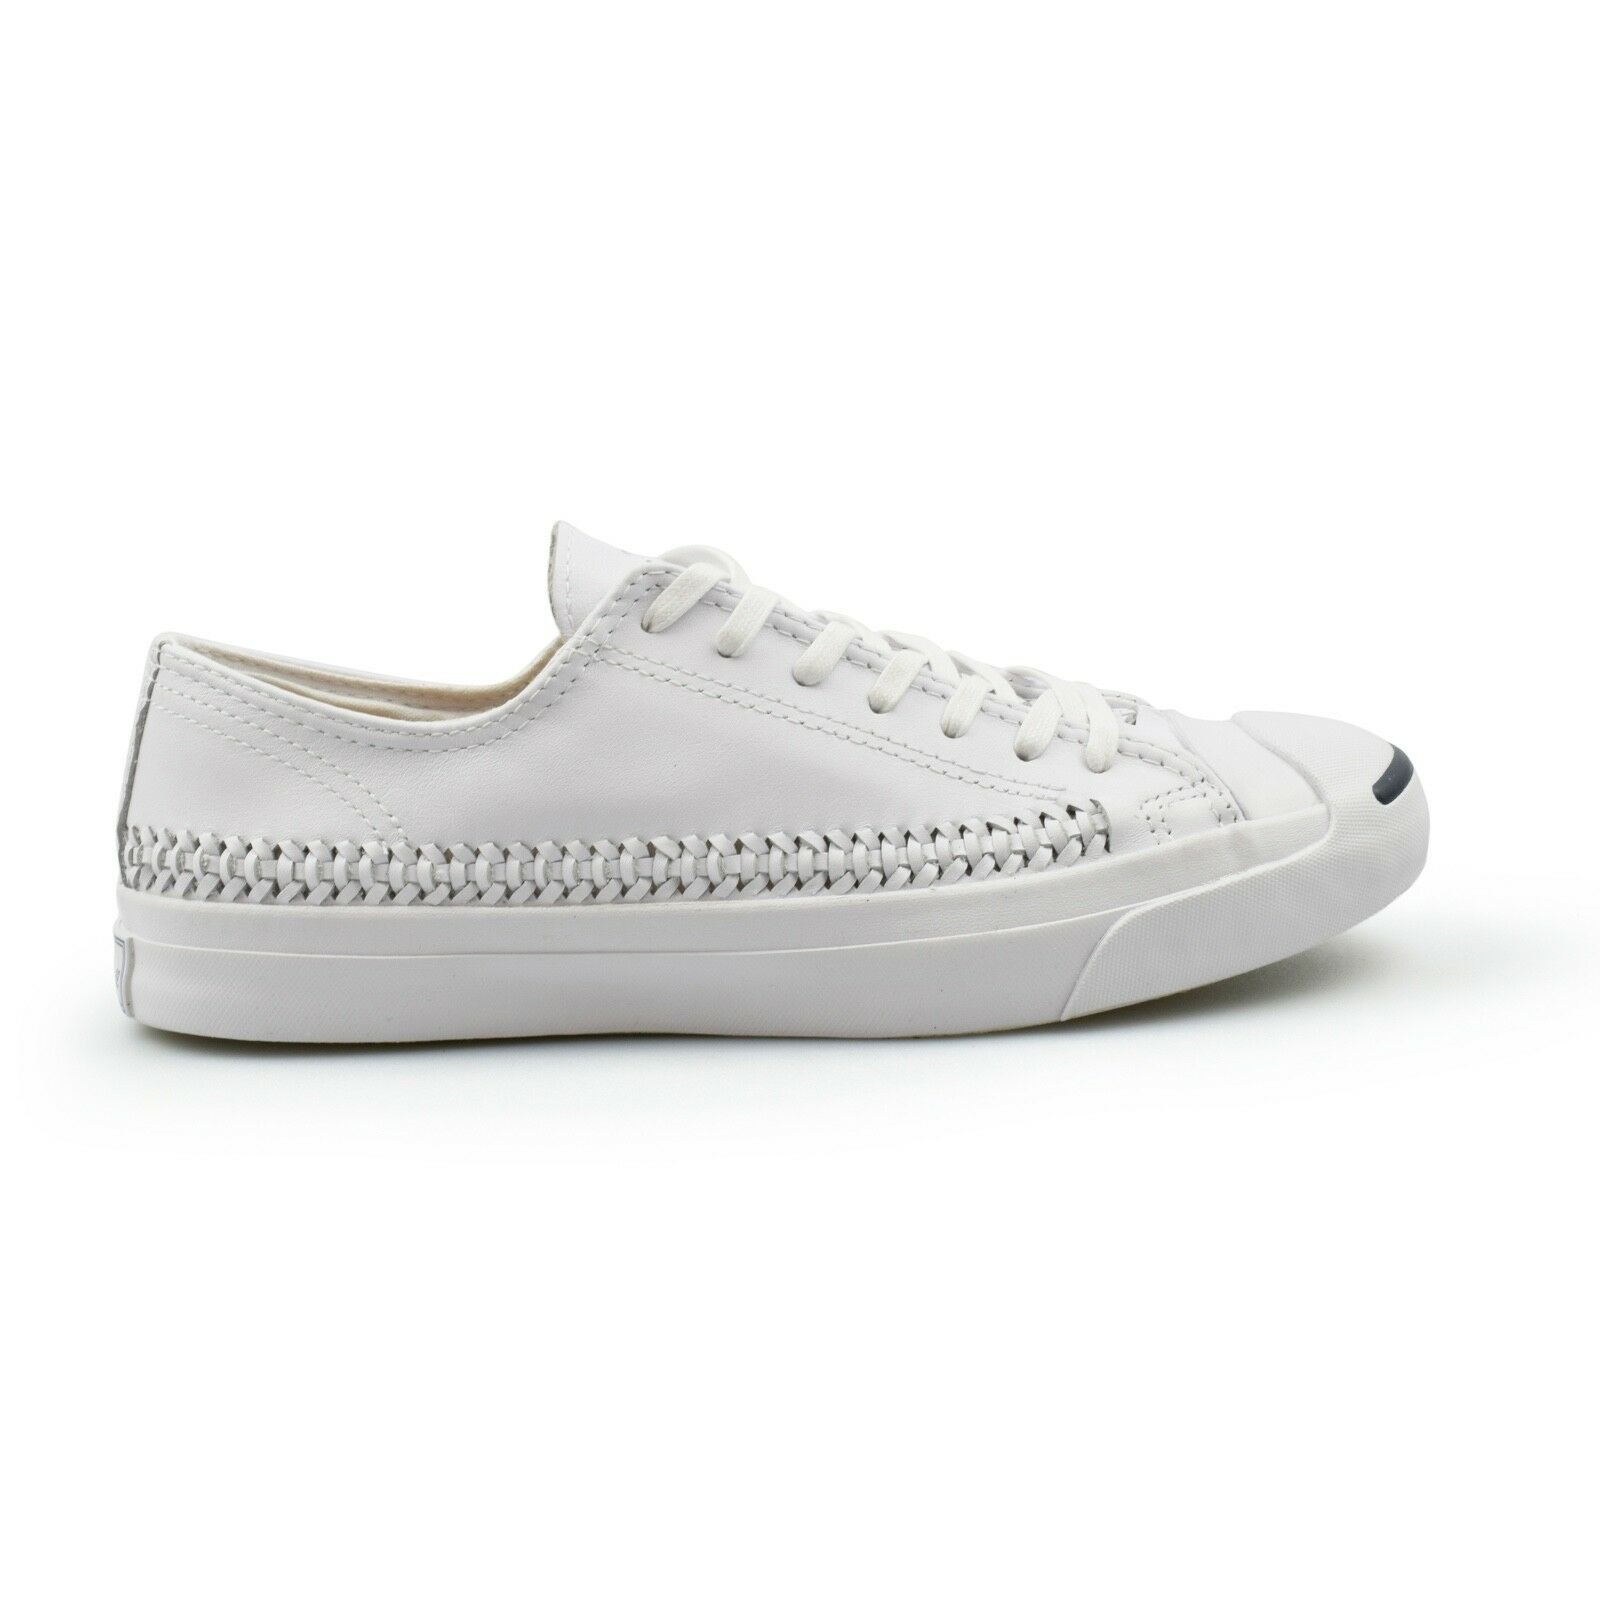 Converse Jack Purcell Woven Leather Triple White Mens Trainers New 147593C